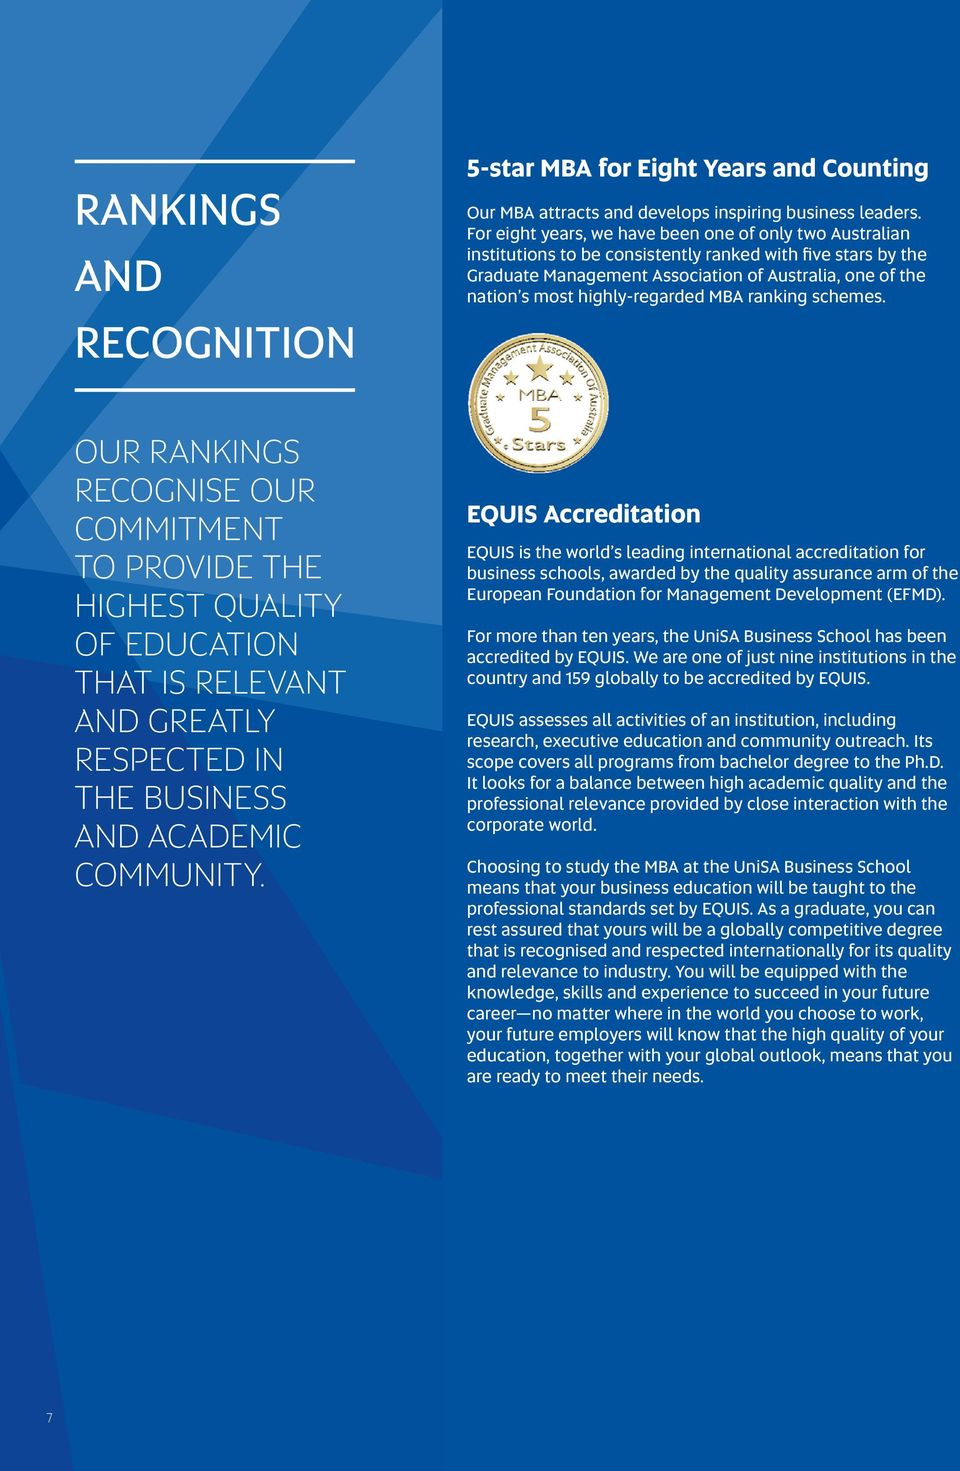 highly-regarded MBA ranking schemes. OUR RANKINGS RECOGNISE OUR COMMITMENT TO PROVIDE THE HIGHEST QUALITY OF EDUCATION THAT IS RELEVANT AND GREATLY RESPECTED IN THE BUSINESS AND ACADEMIC COMMUNITY.